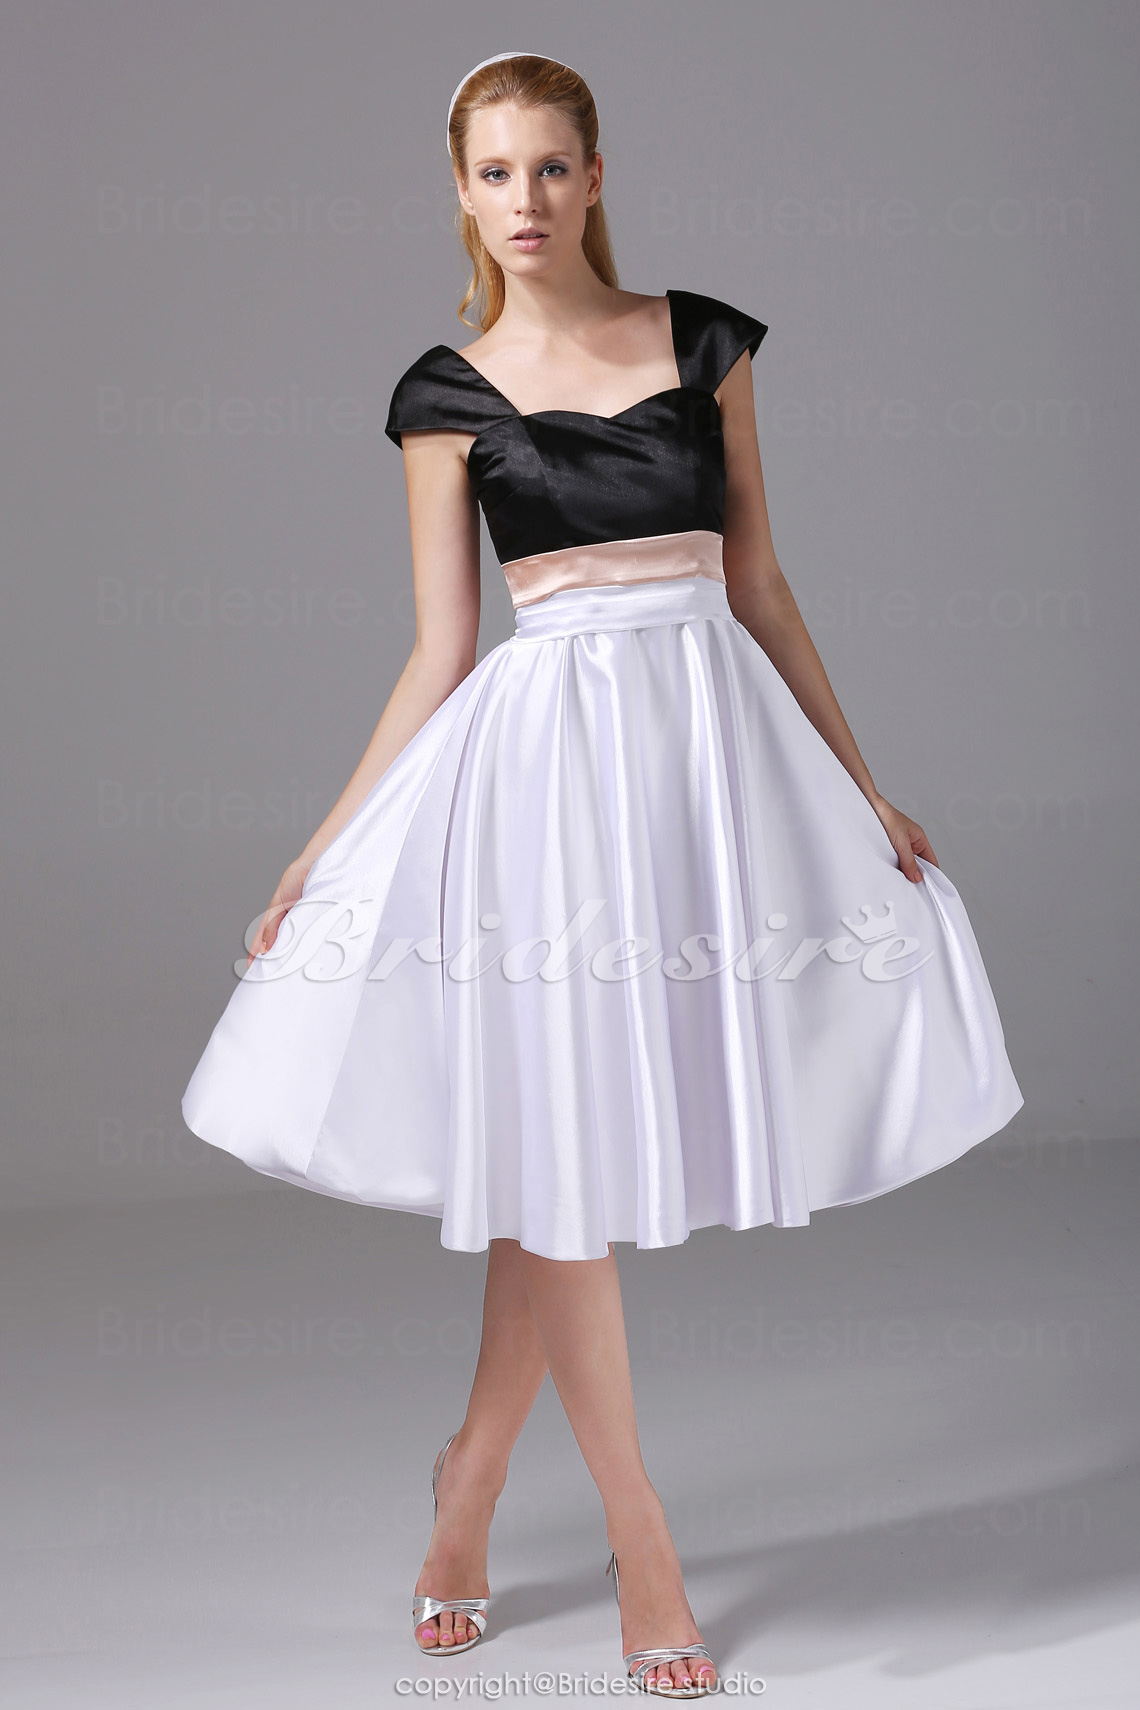 A-line Sweetheart Knee-length Sleeveless Stretch Satin Dress